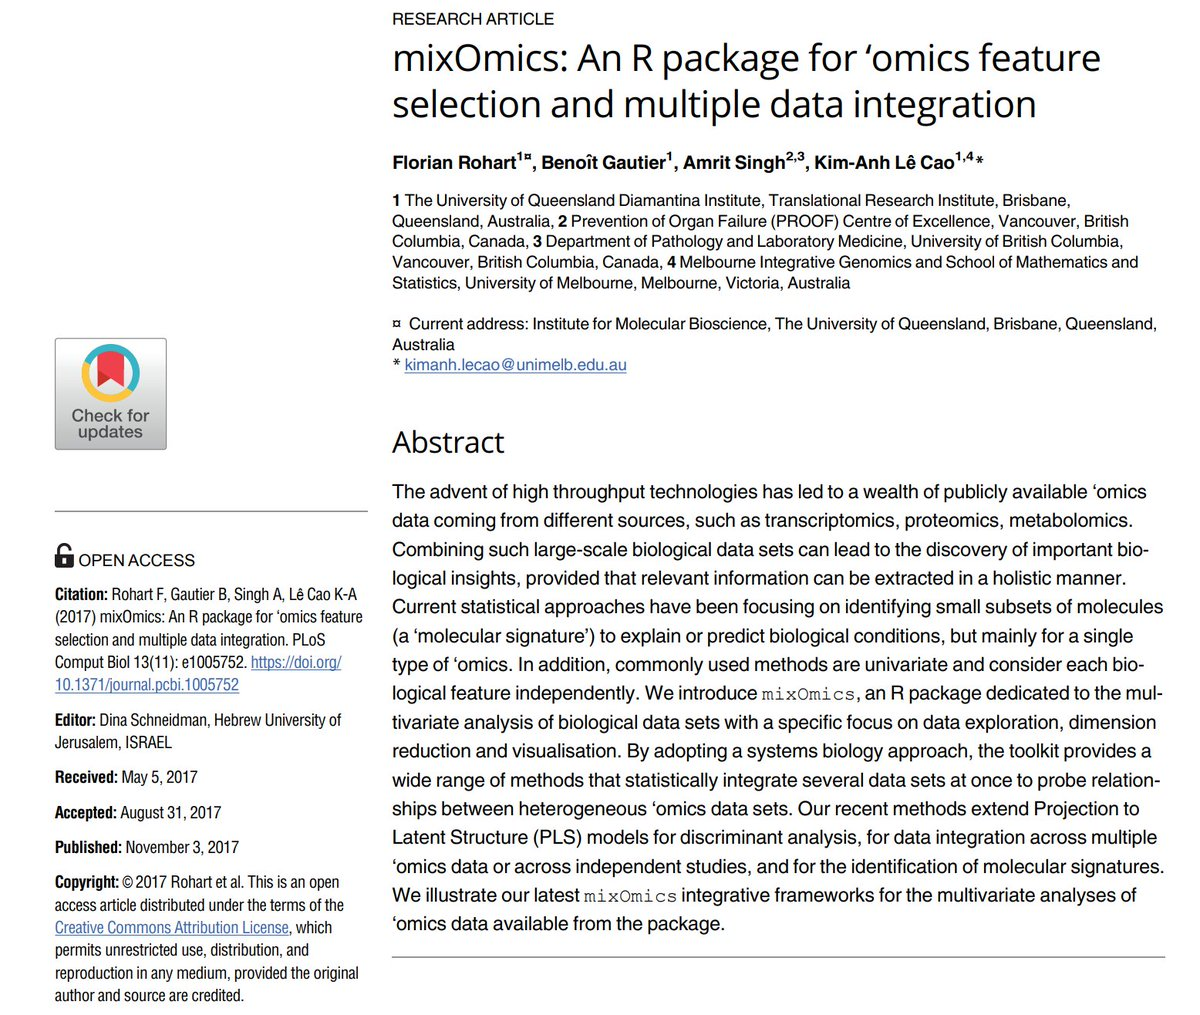 """[#FridayWiMLDSPaper 📜 curated by @lrnt_chloe] """"mixOmics: An R package for 'omics feature selection and multiple data integration"""" by Florian Rohart, Benoît Gautier, @asingh_22g, @mixOmics_team 🔗  #WiMLDSParis #WiMLDS #rstats"""